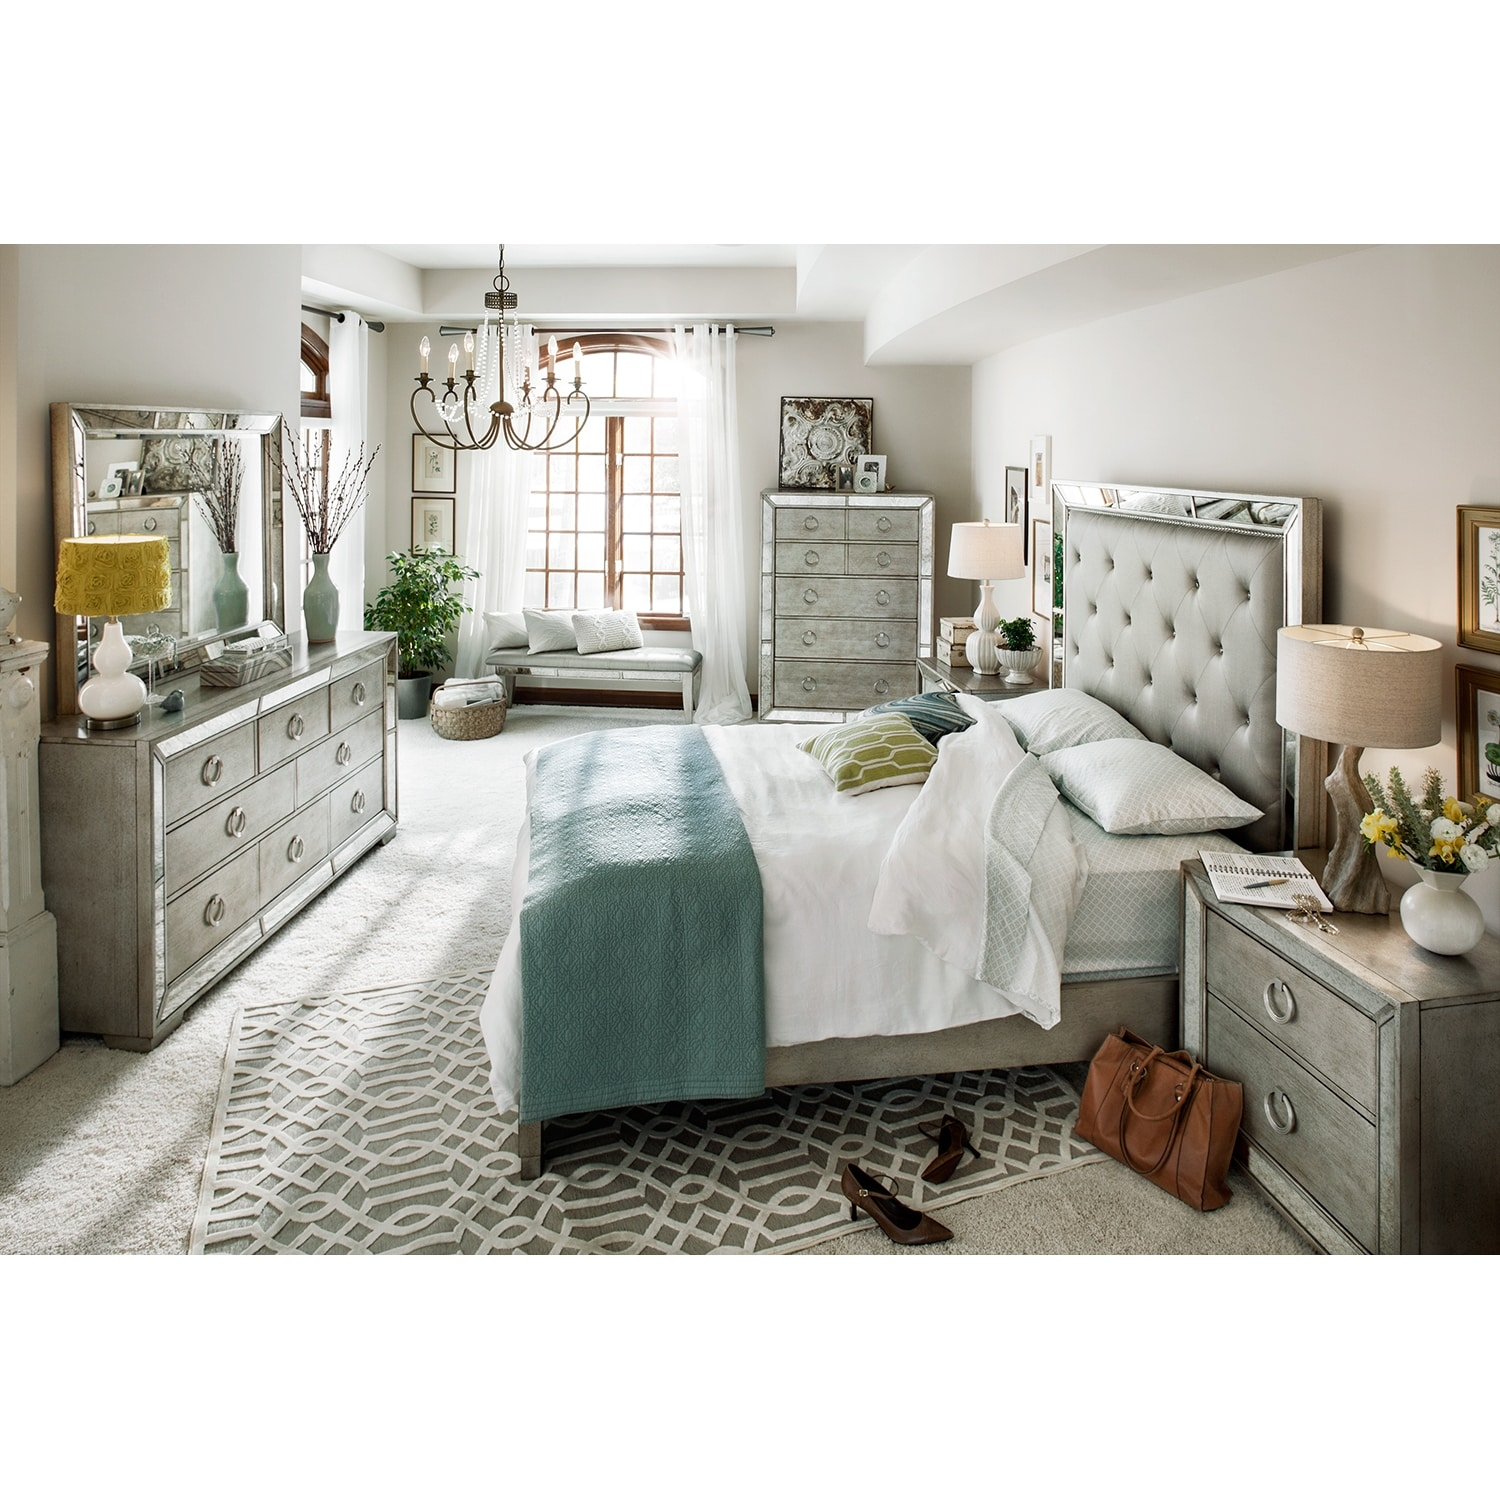 Angelina King Bed Metallic Value City Furniture